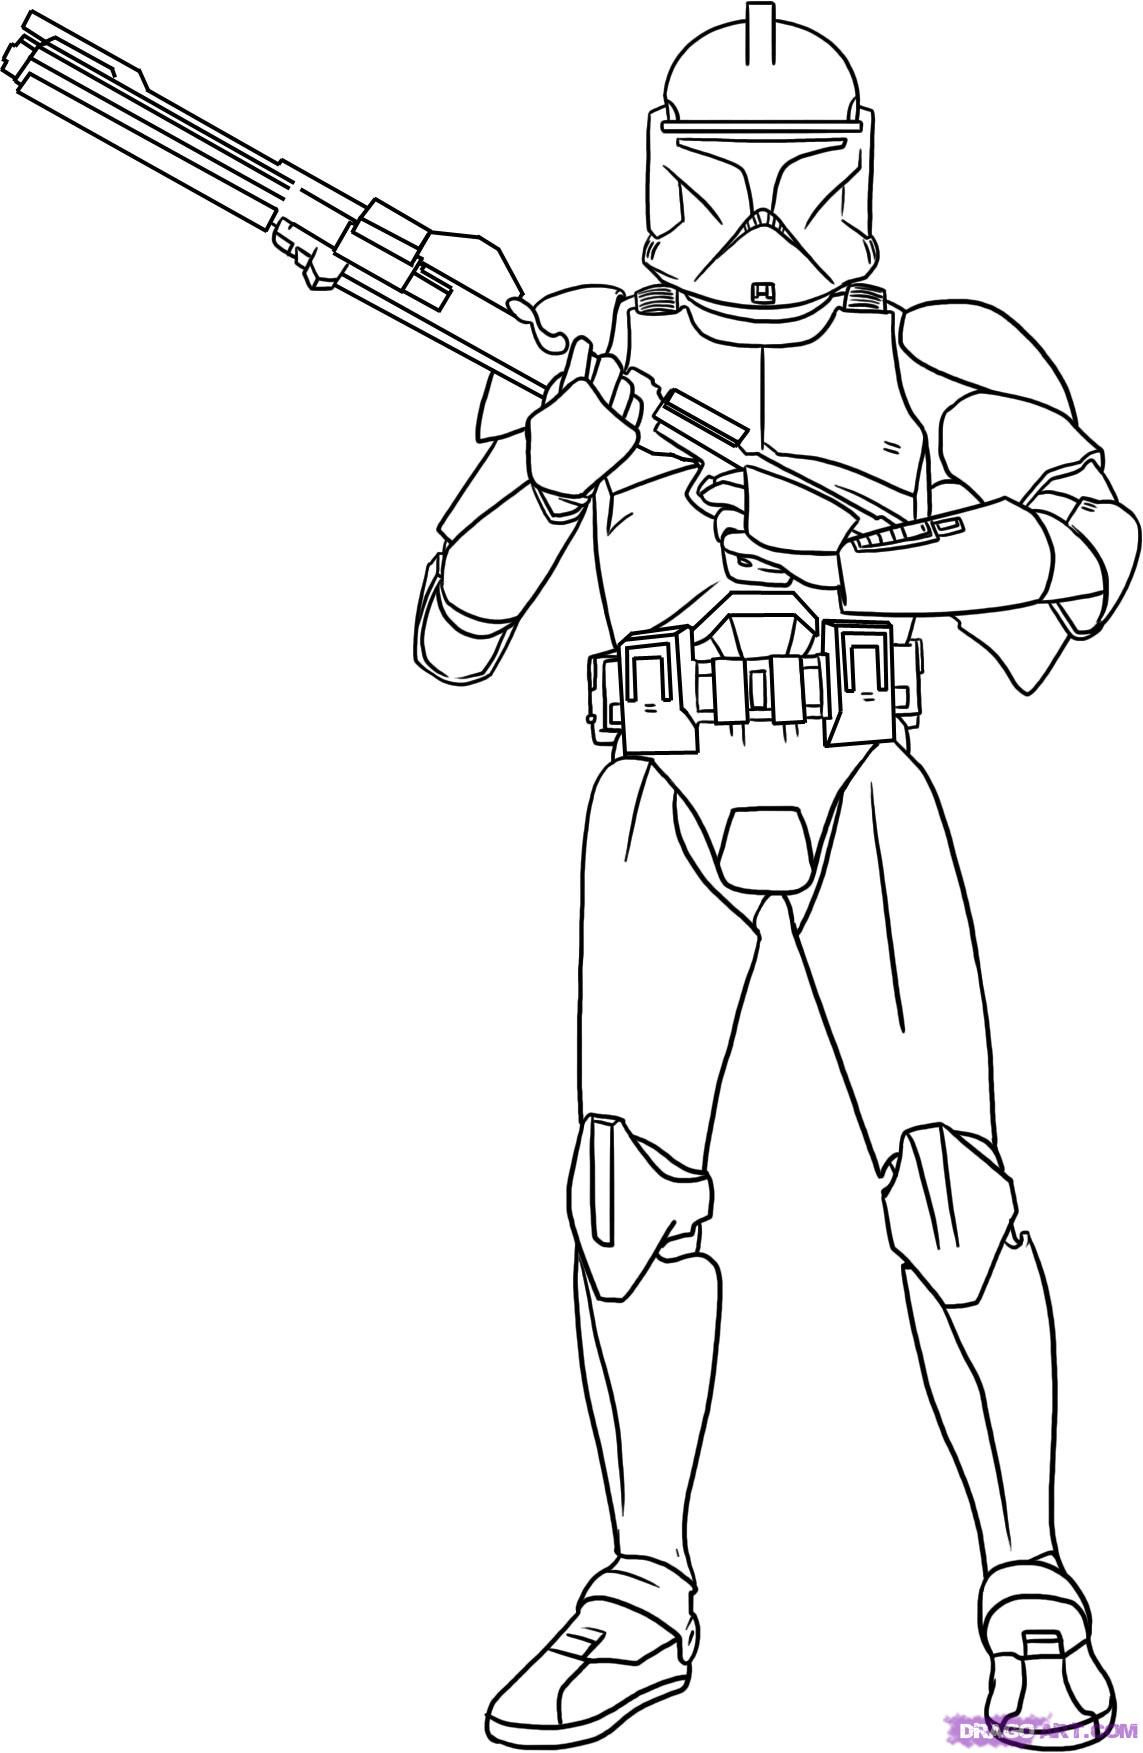 Star Wars Color Pages Clone Wars Coloring Pages Idees Fluch Star Wars Coloring Pages Free